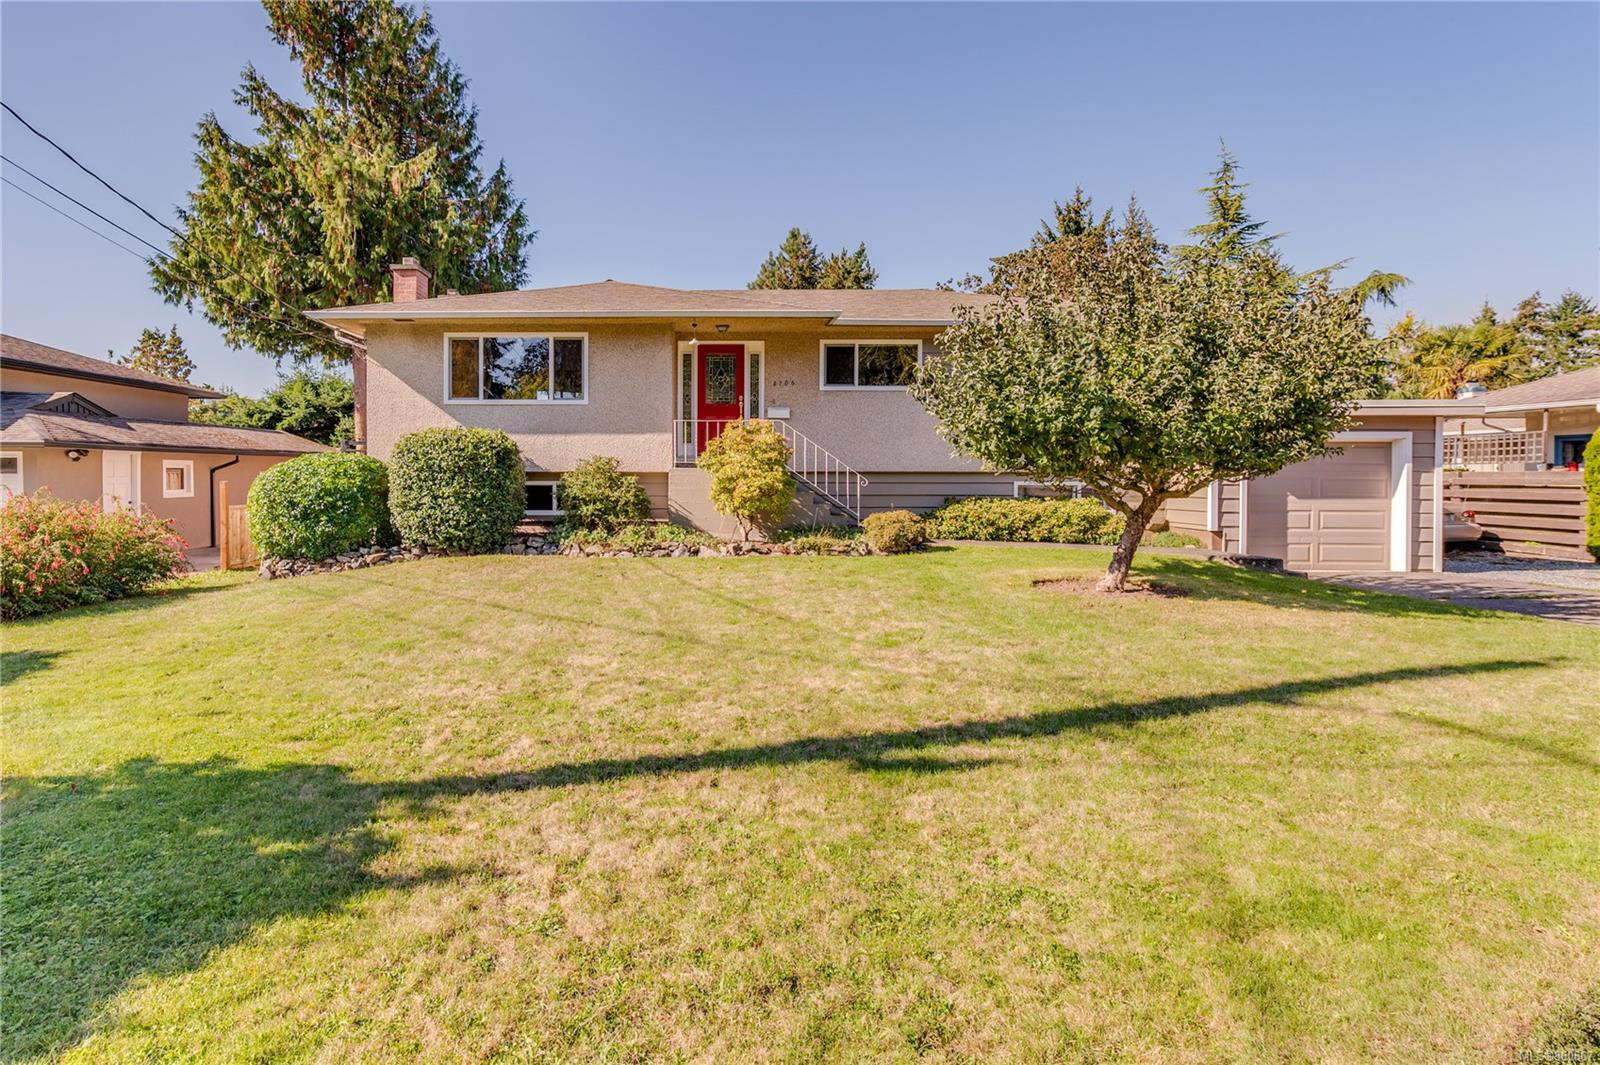 Main Photo: 4106 San Ardo Pl in : SE Gordon Head House for sale (Saanich East)  : MLS®# 860667